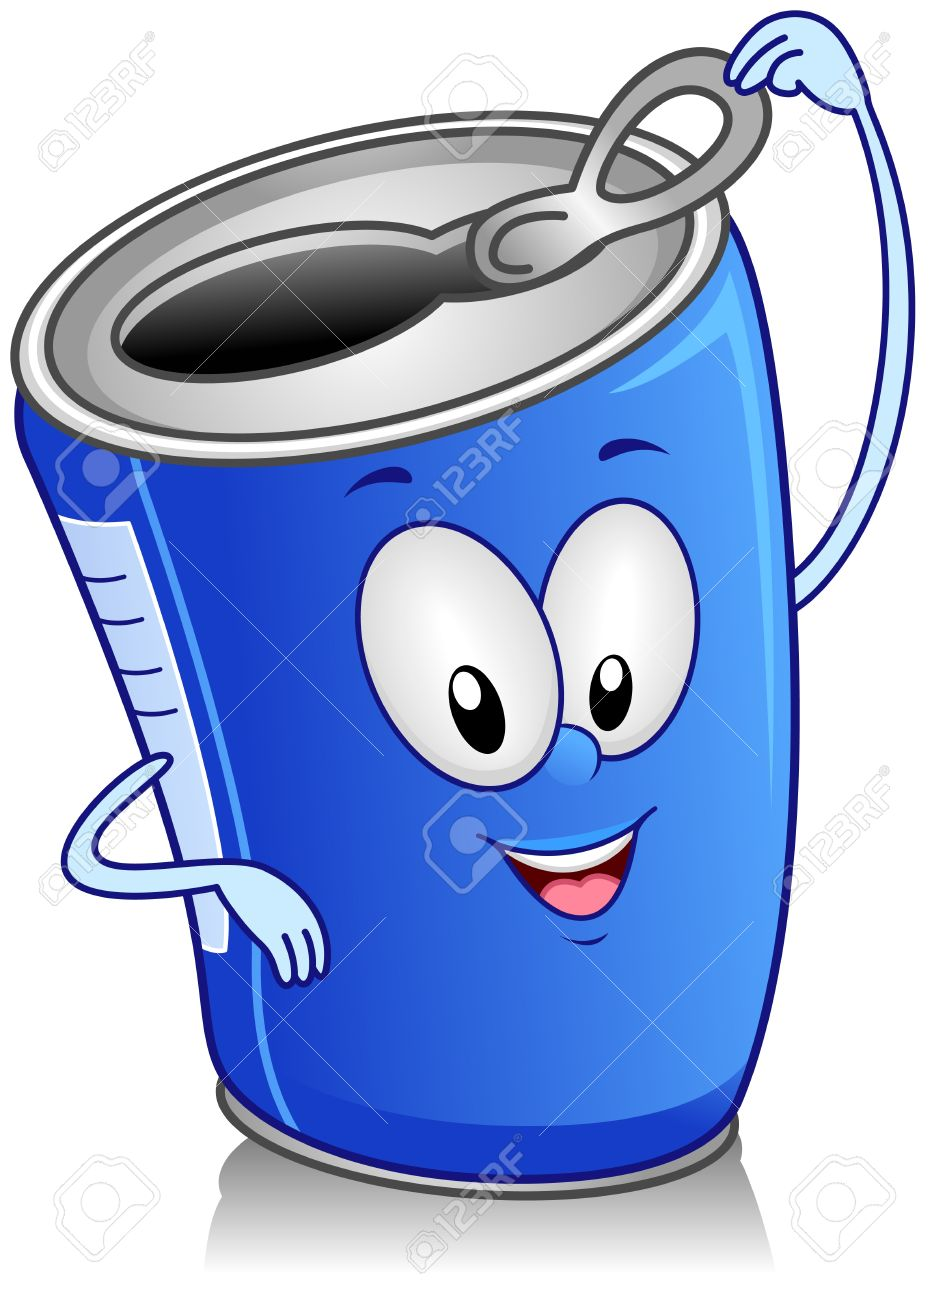 Illustration Of Canned Drink Character Stock Photo, Picture And ...